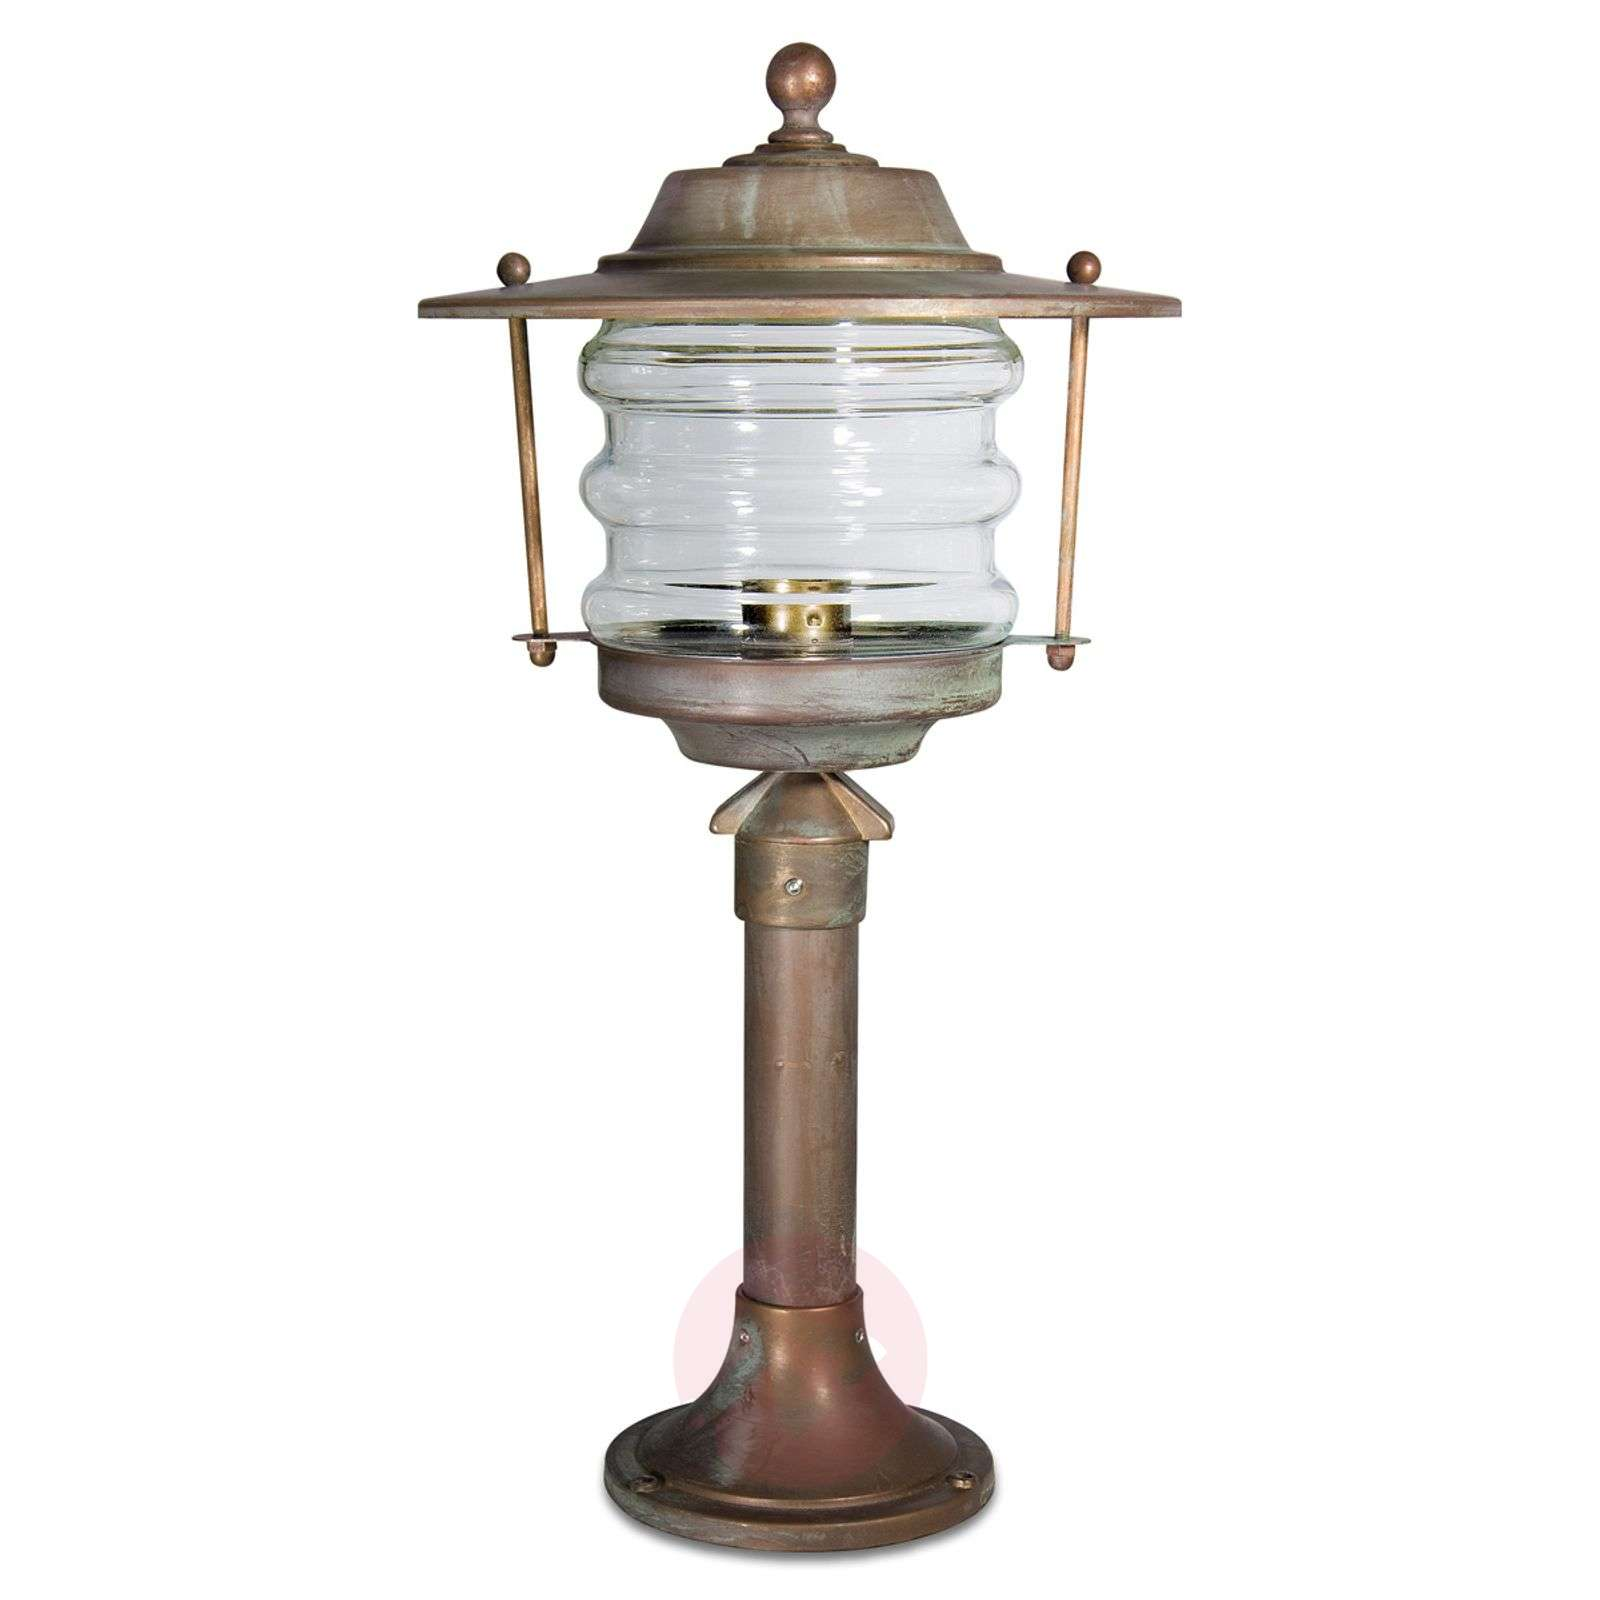 Pillar light Adessora Laterne seawater-resistant-6515258-01